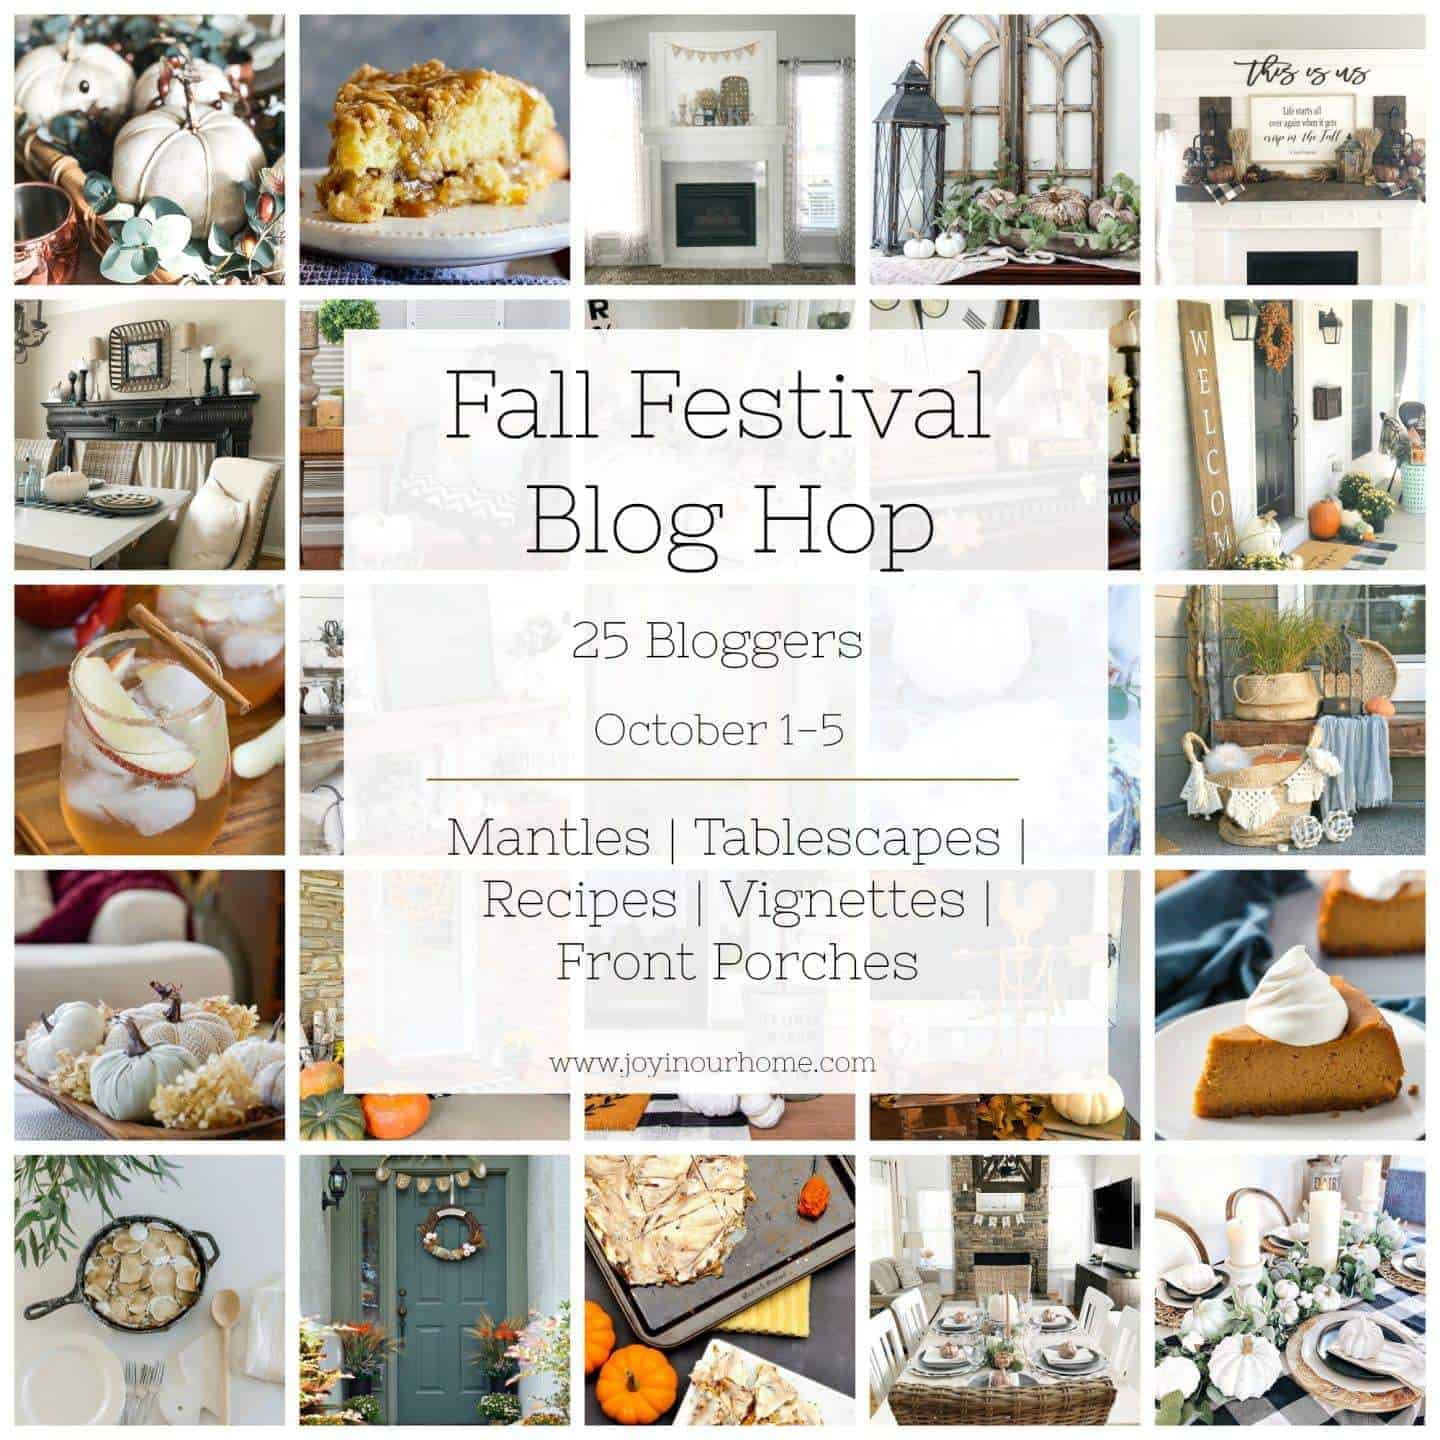 collage of fall festival blog hop participants with large graphic